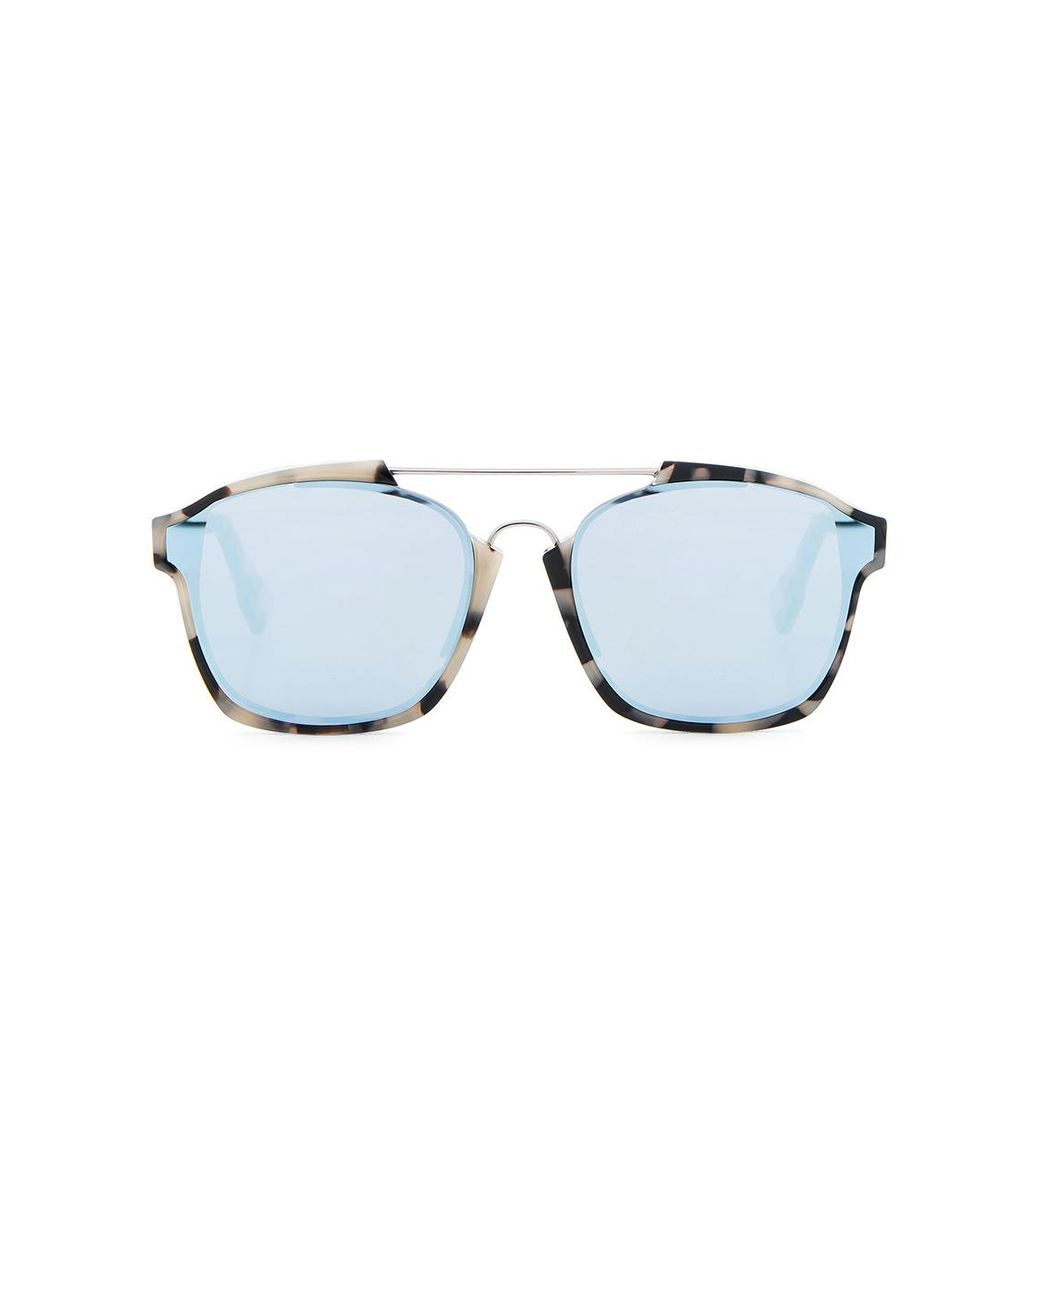 280c980970 Dior Abstract Sunglasses in Blue - Lyst